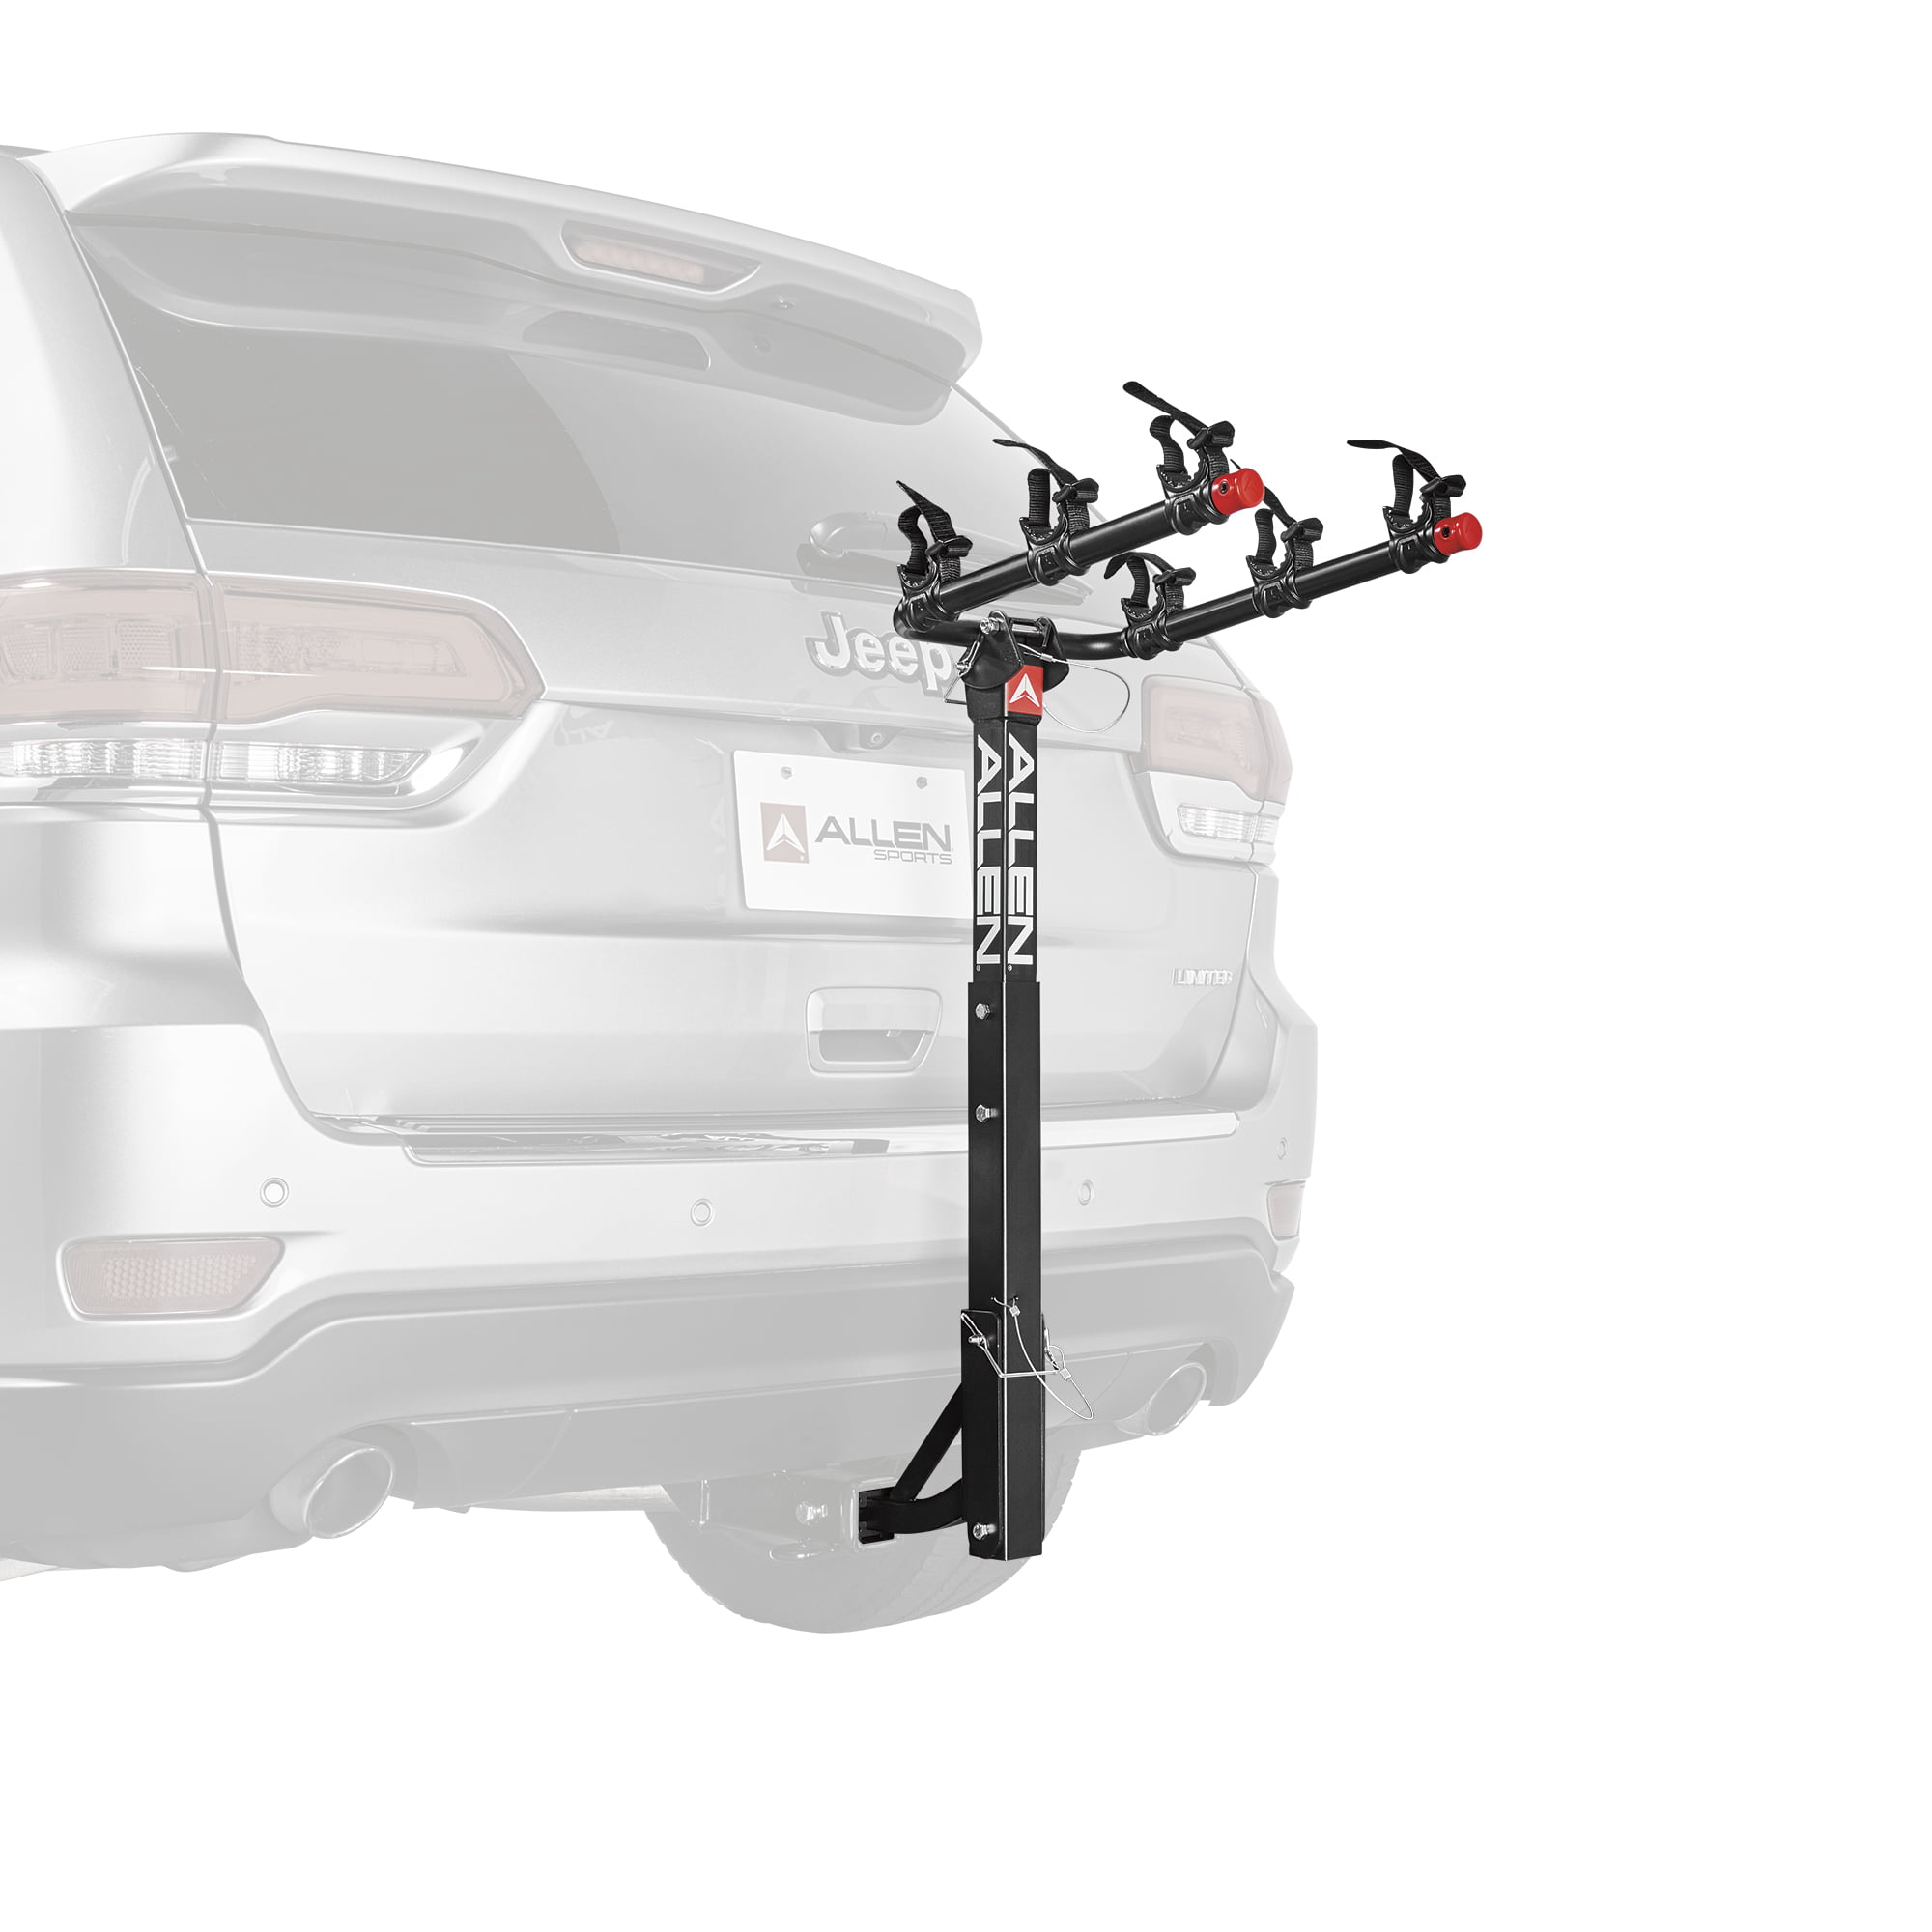 Allen Sports Deluxe 3-Bicycle Hitch Mounted Bike Rack, 532RR by Allen Sports